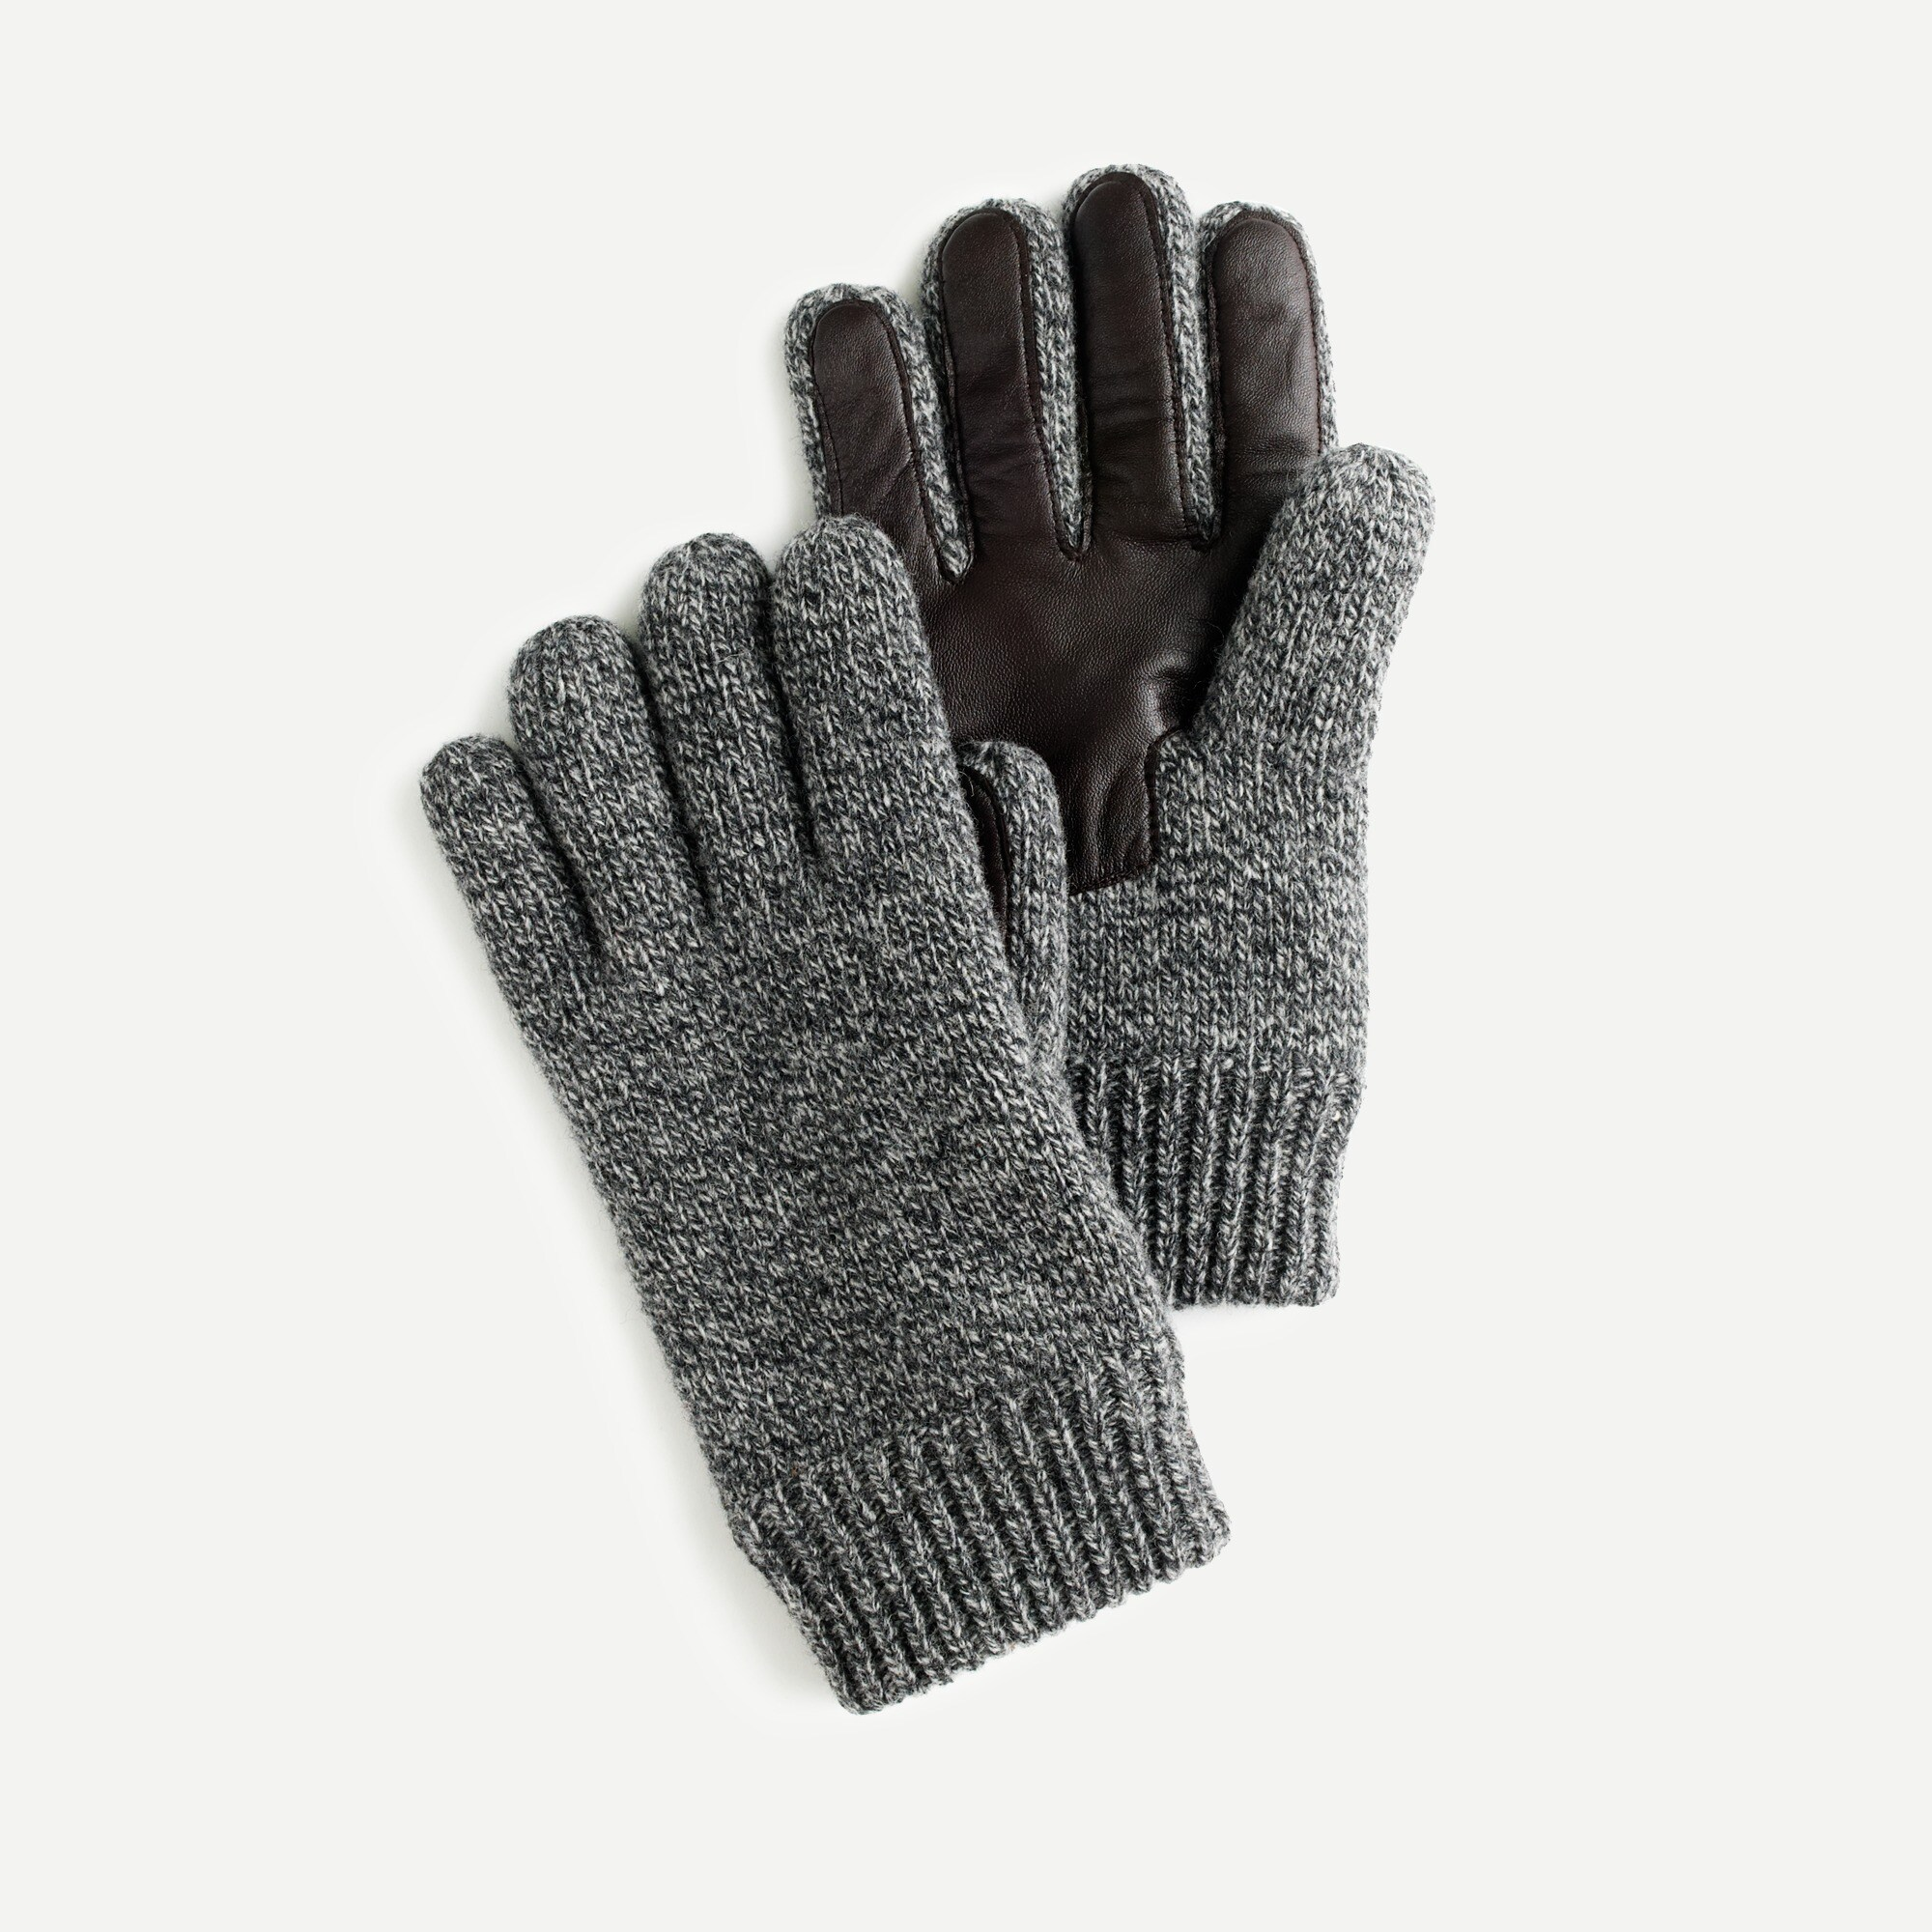 men's wool smartphone gloves - men's accessories